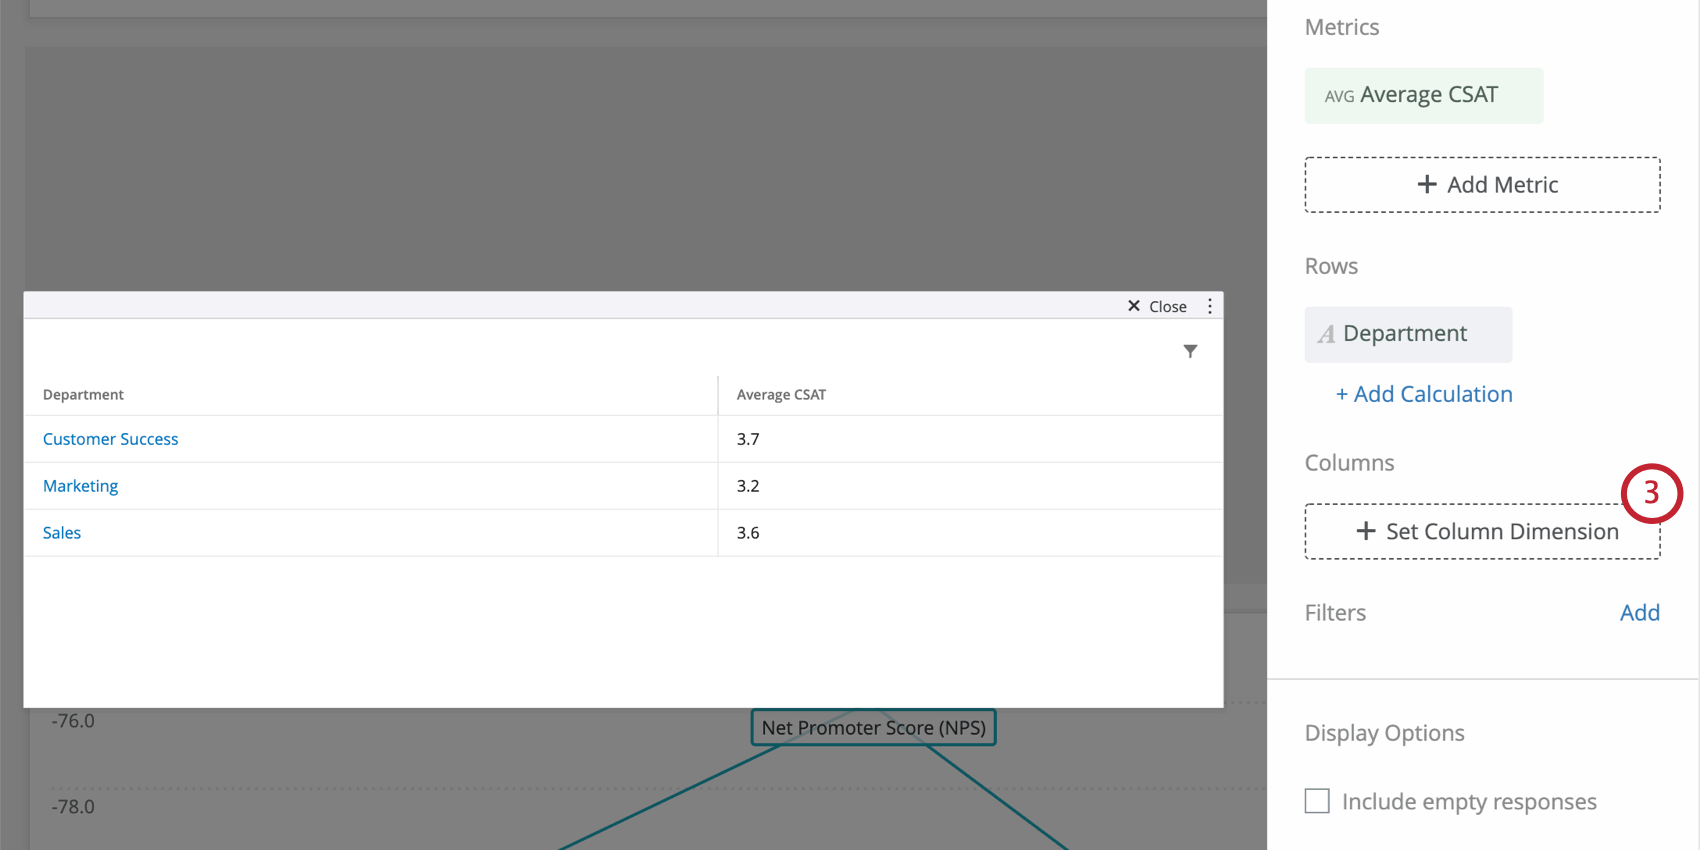 Simple table now also has a row added, so we see separate CSATs for different departments, such as marketing, customer success, and sales. These are rows of the table